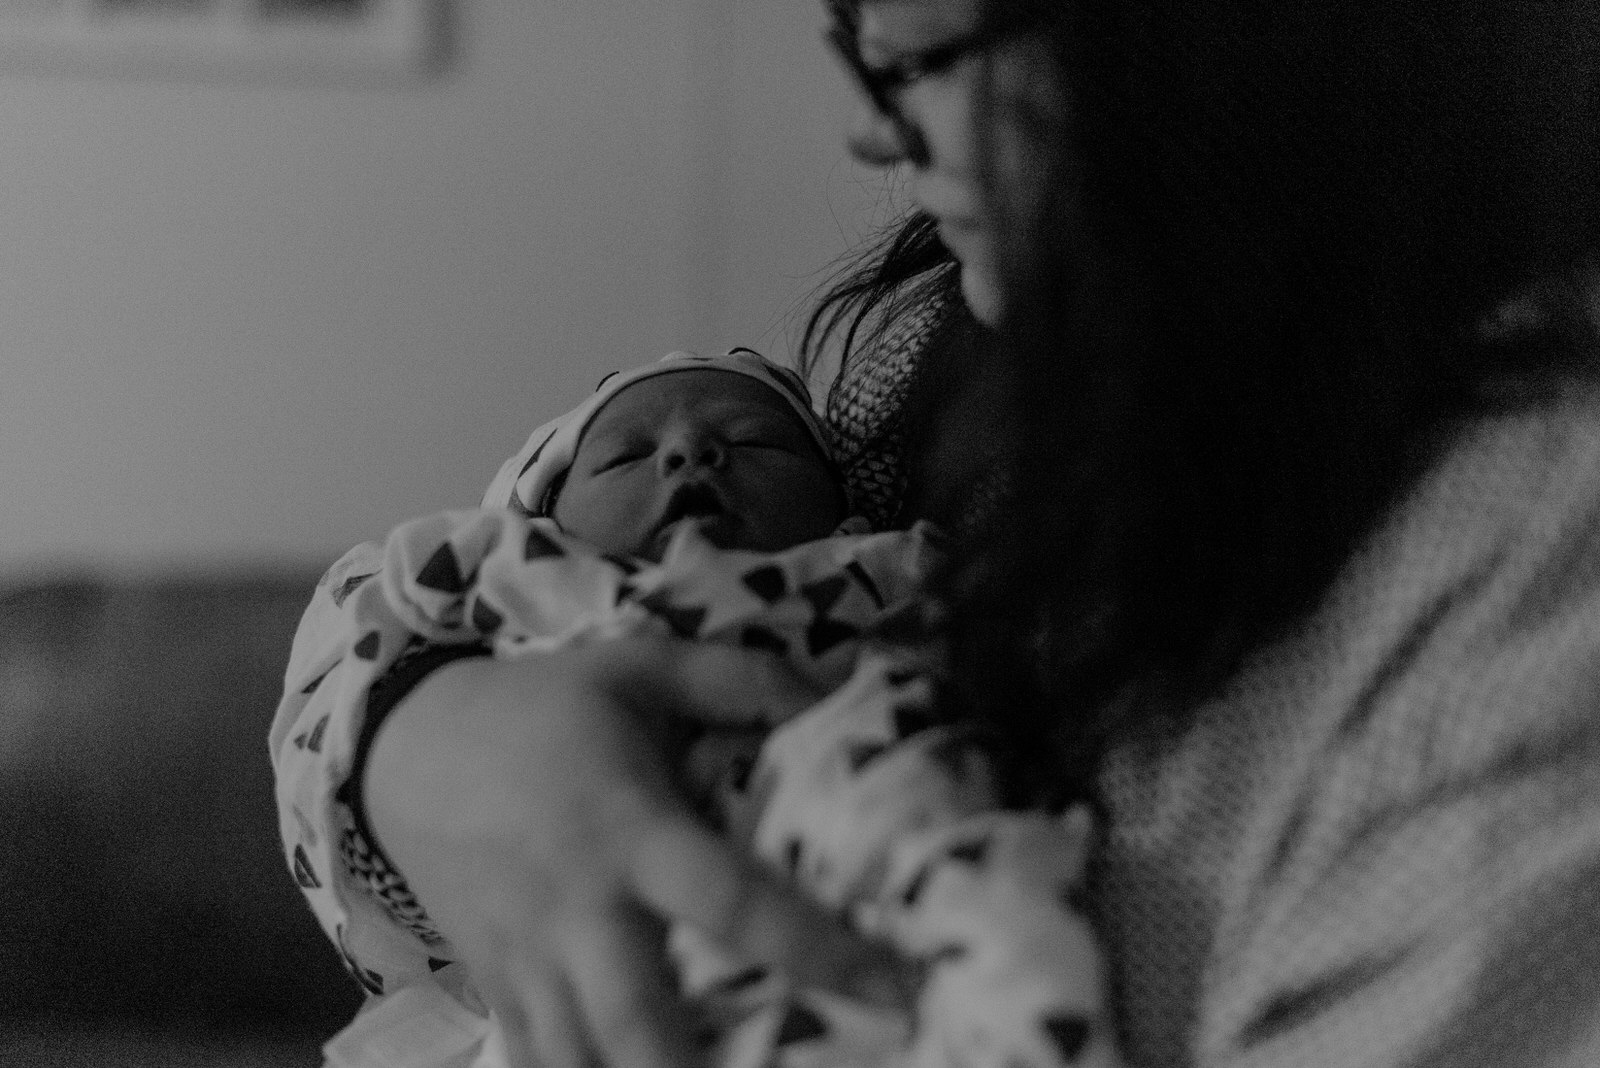 close up black and white image of a new parent holding their baby moments after birth who is swaddled up cozy photo by birth photographer jena lee photographs in golden bc in article about birth photography faq